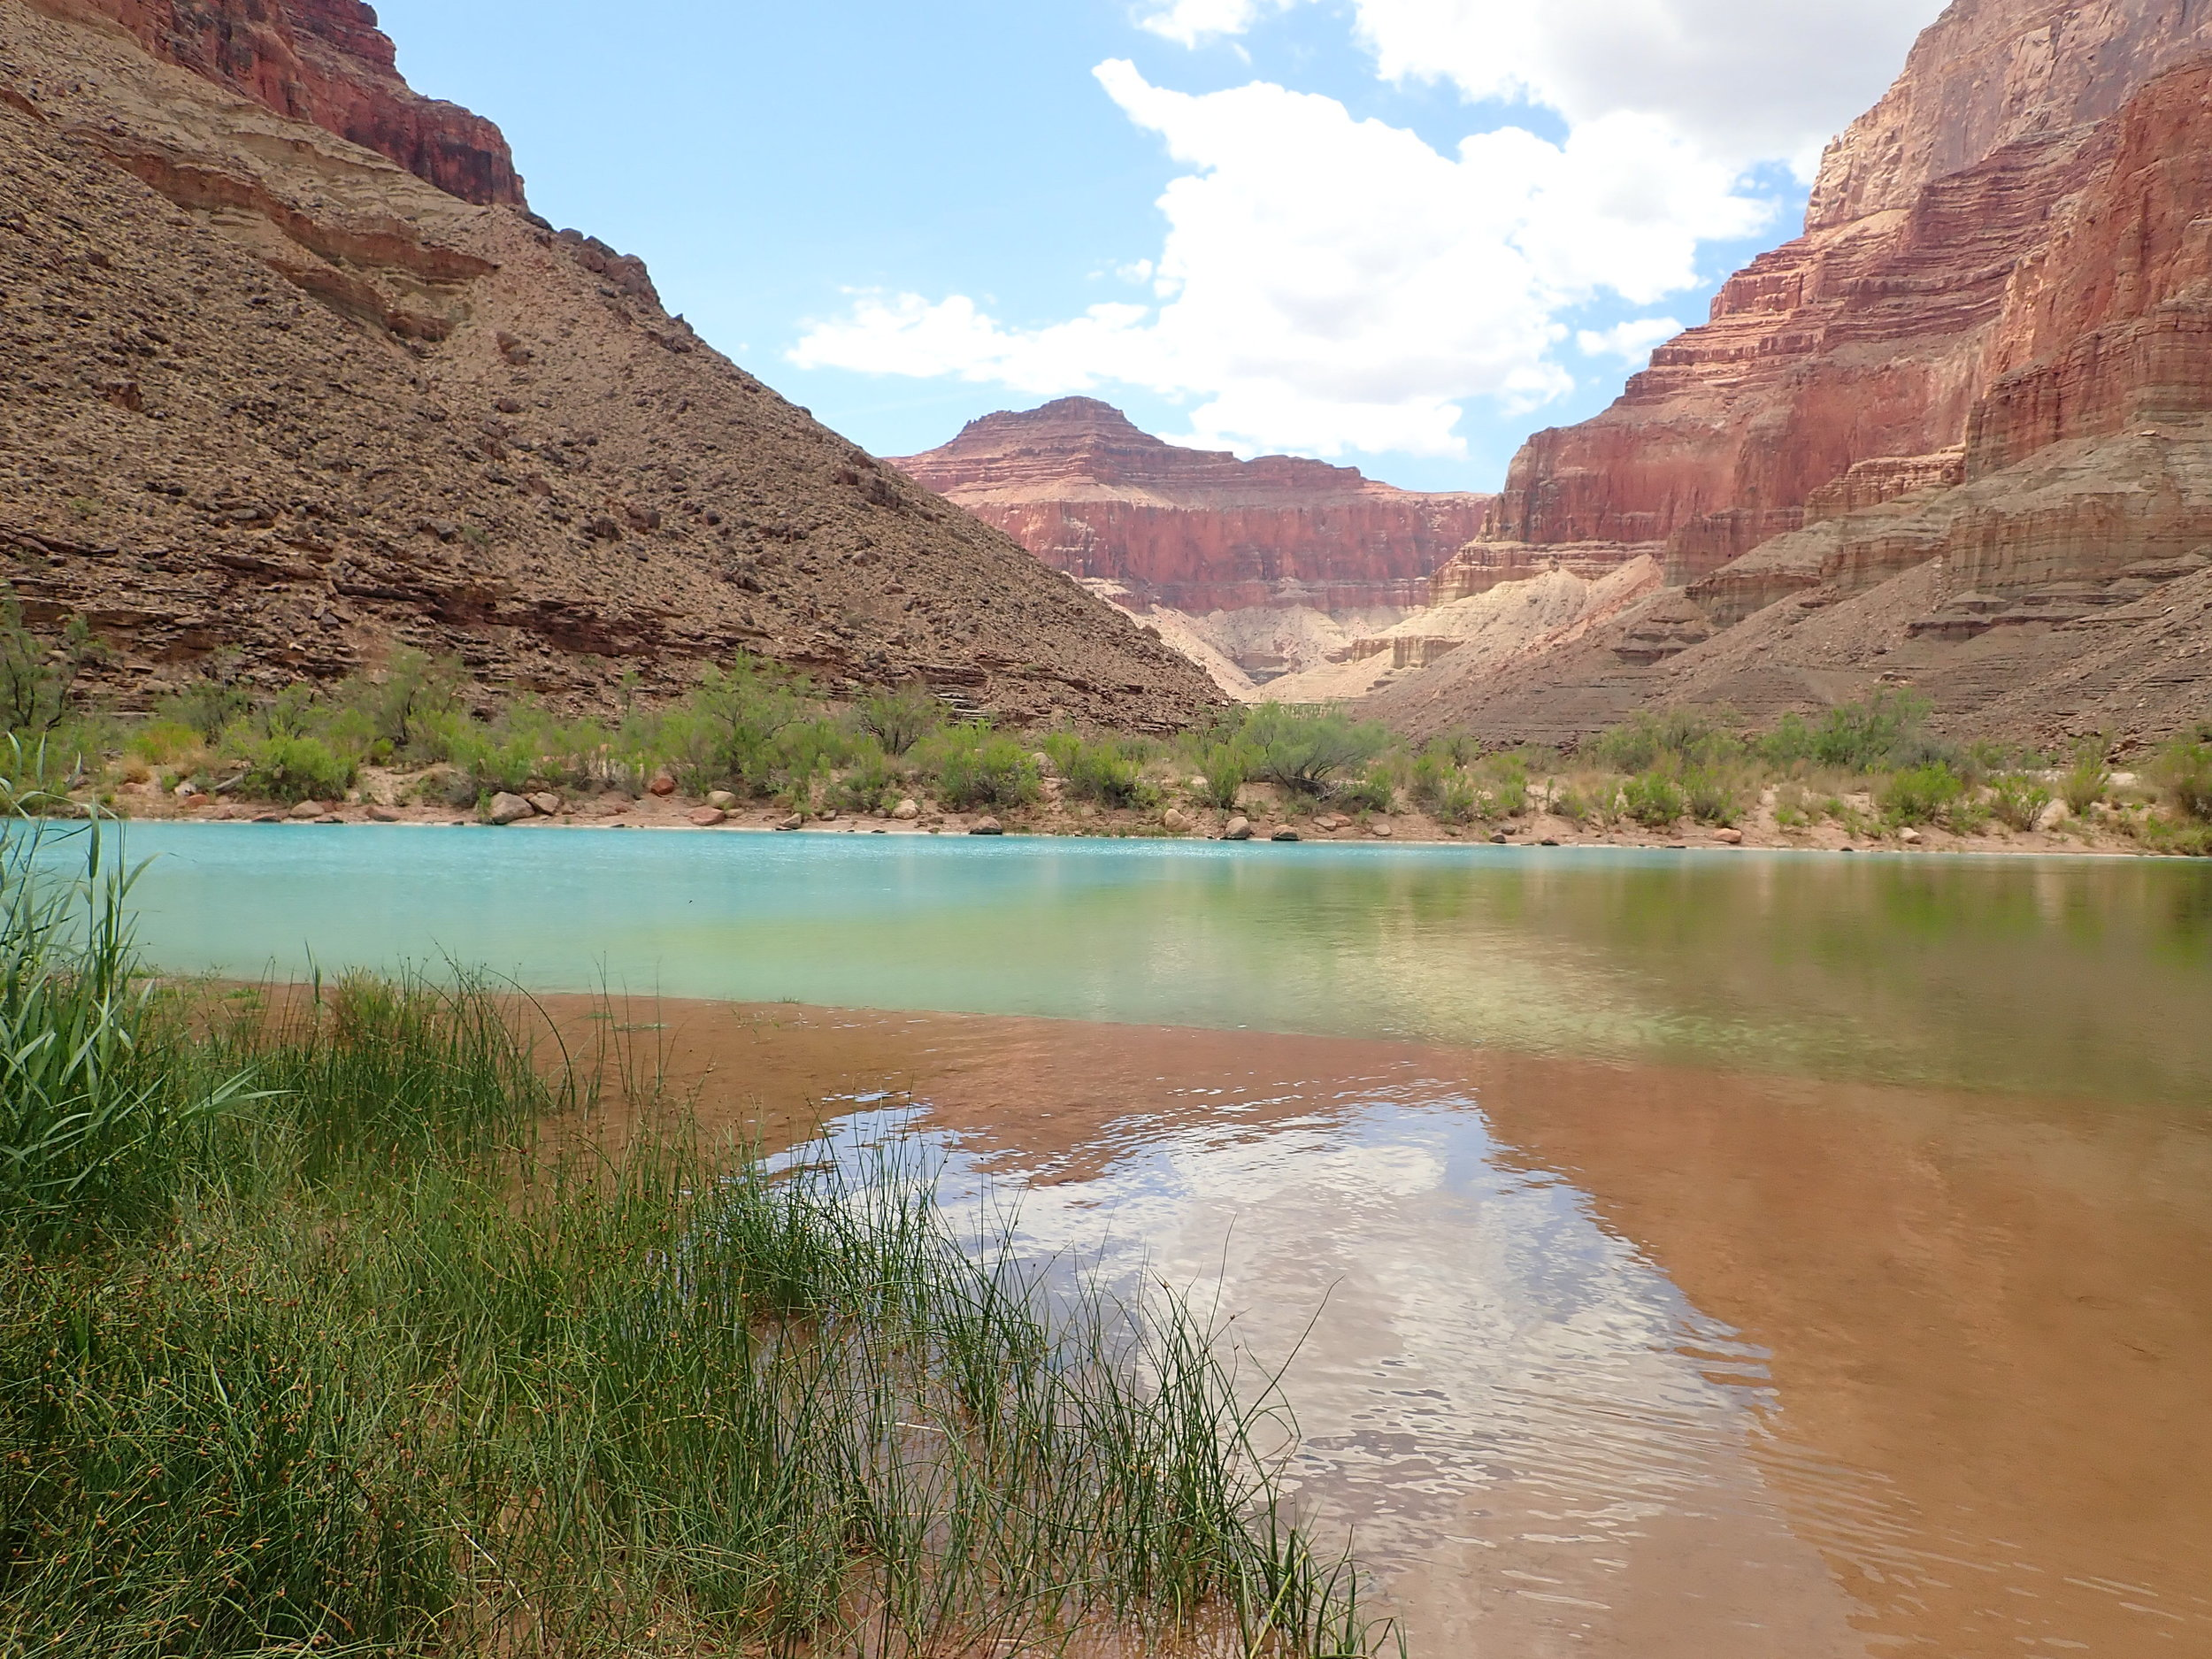 Confluence. Pale blue water meets emerald green water. Mile 61.7